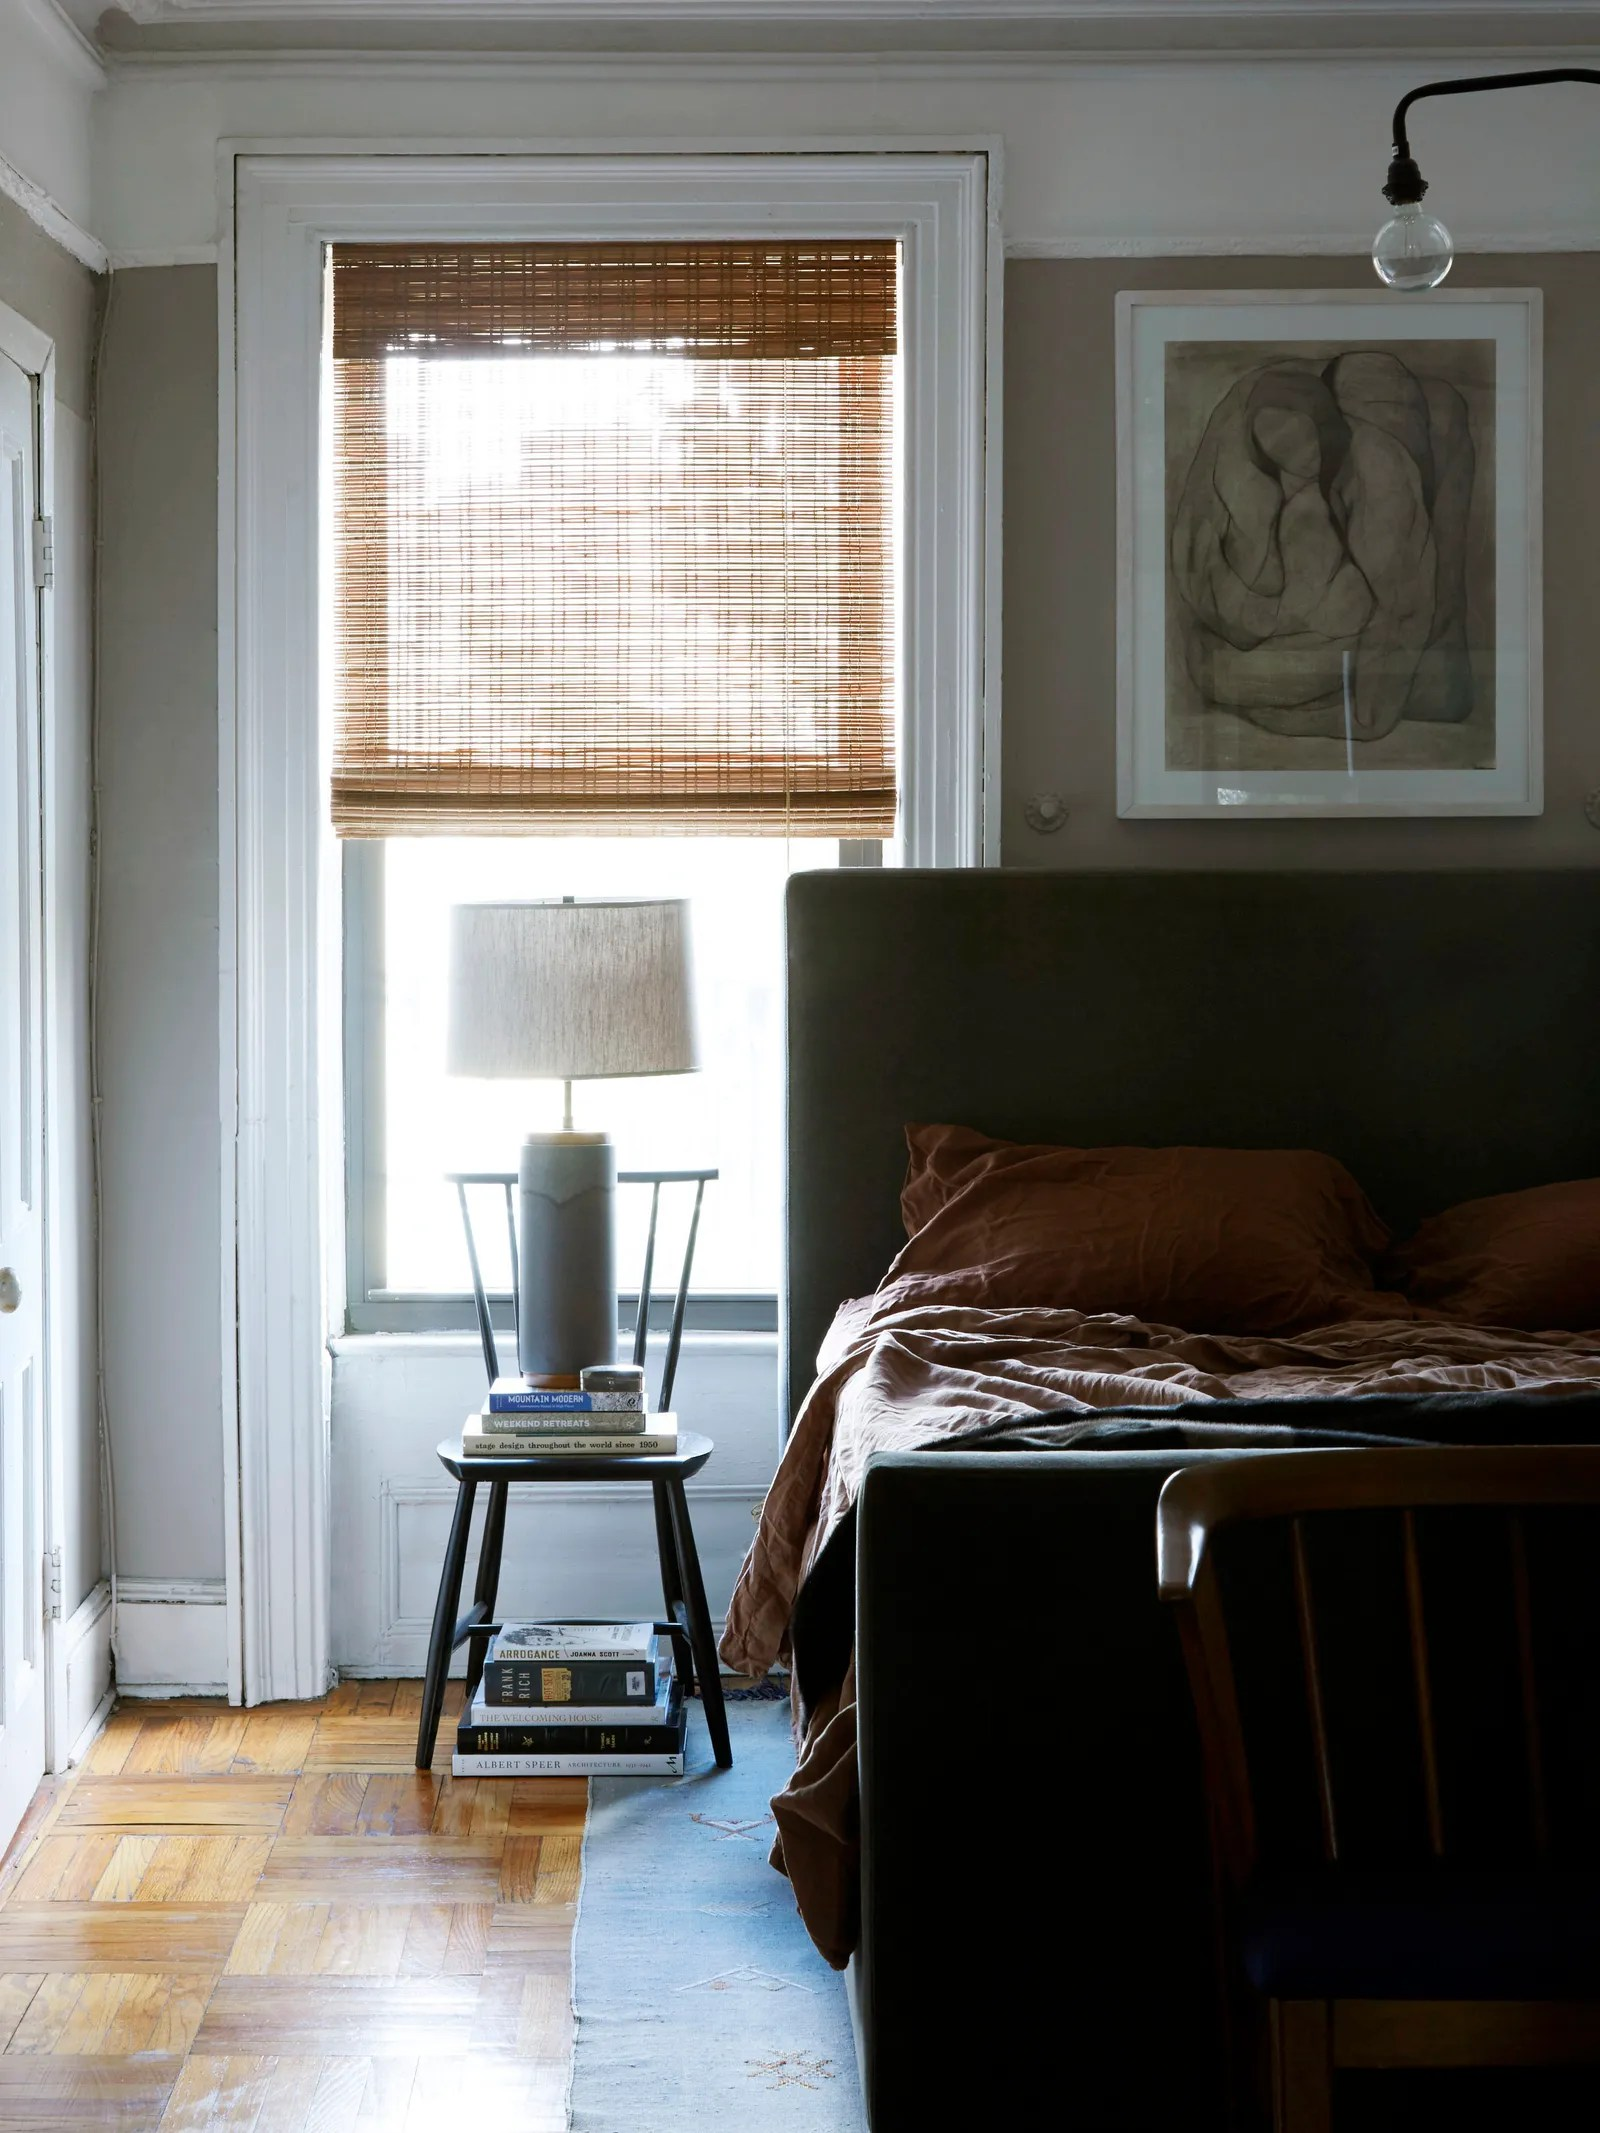 11 Alternative Bedside Table Ideas Architectural Digest